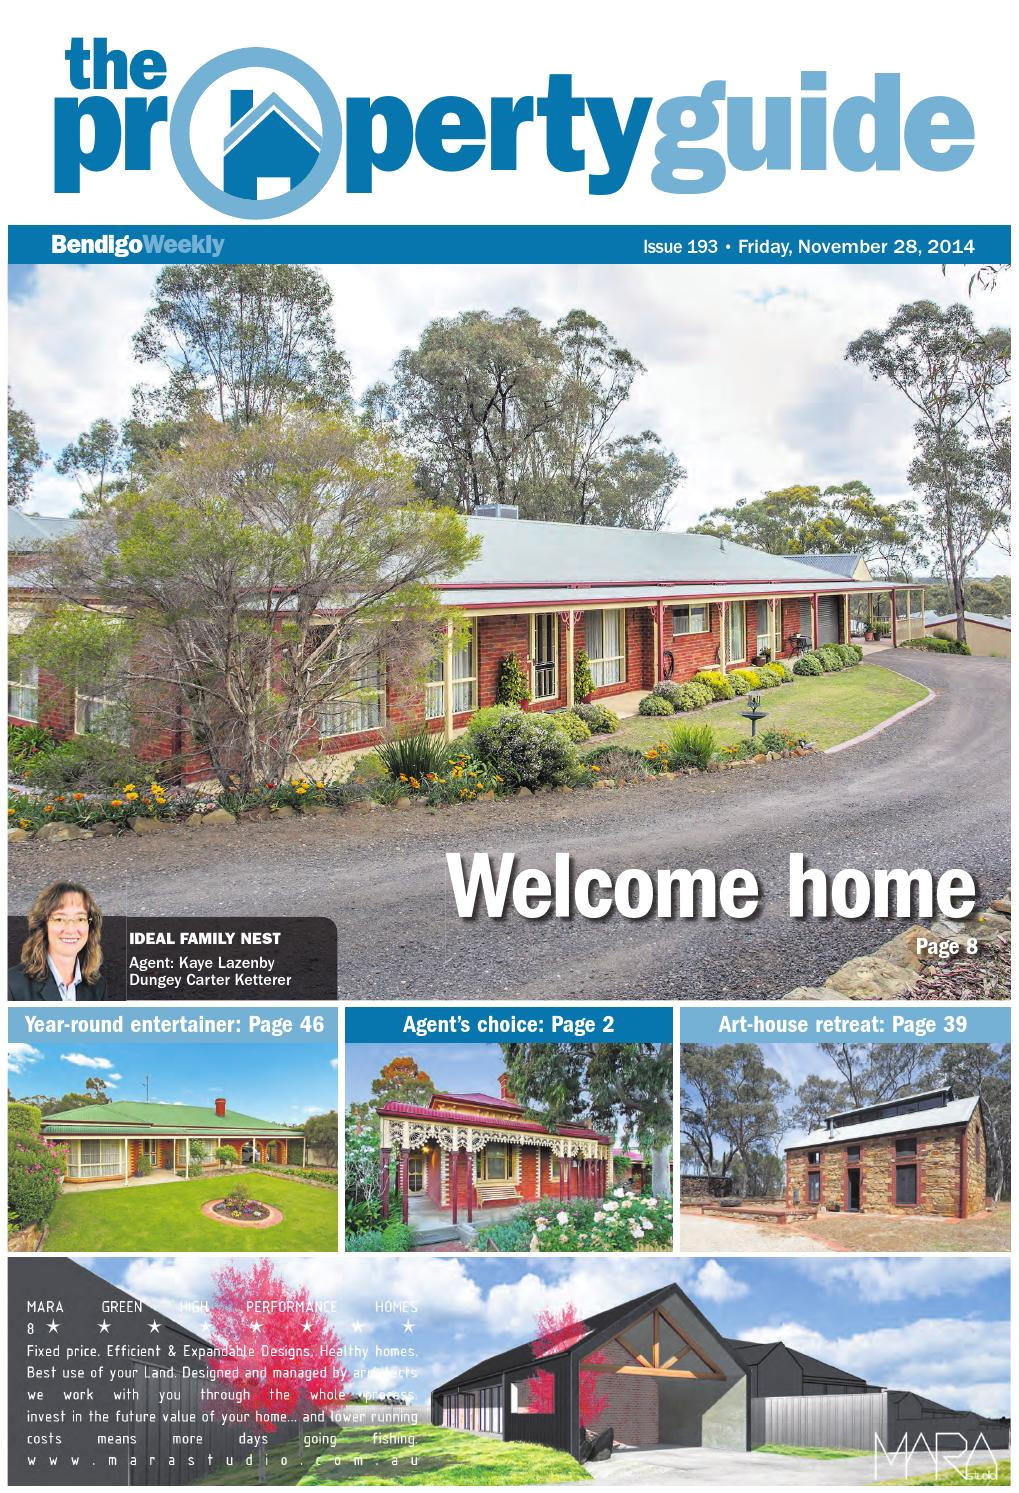 bendigo weekly property guide issue 193 fri nov 28 2014 by bendigo weekly issuu